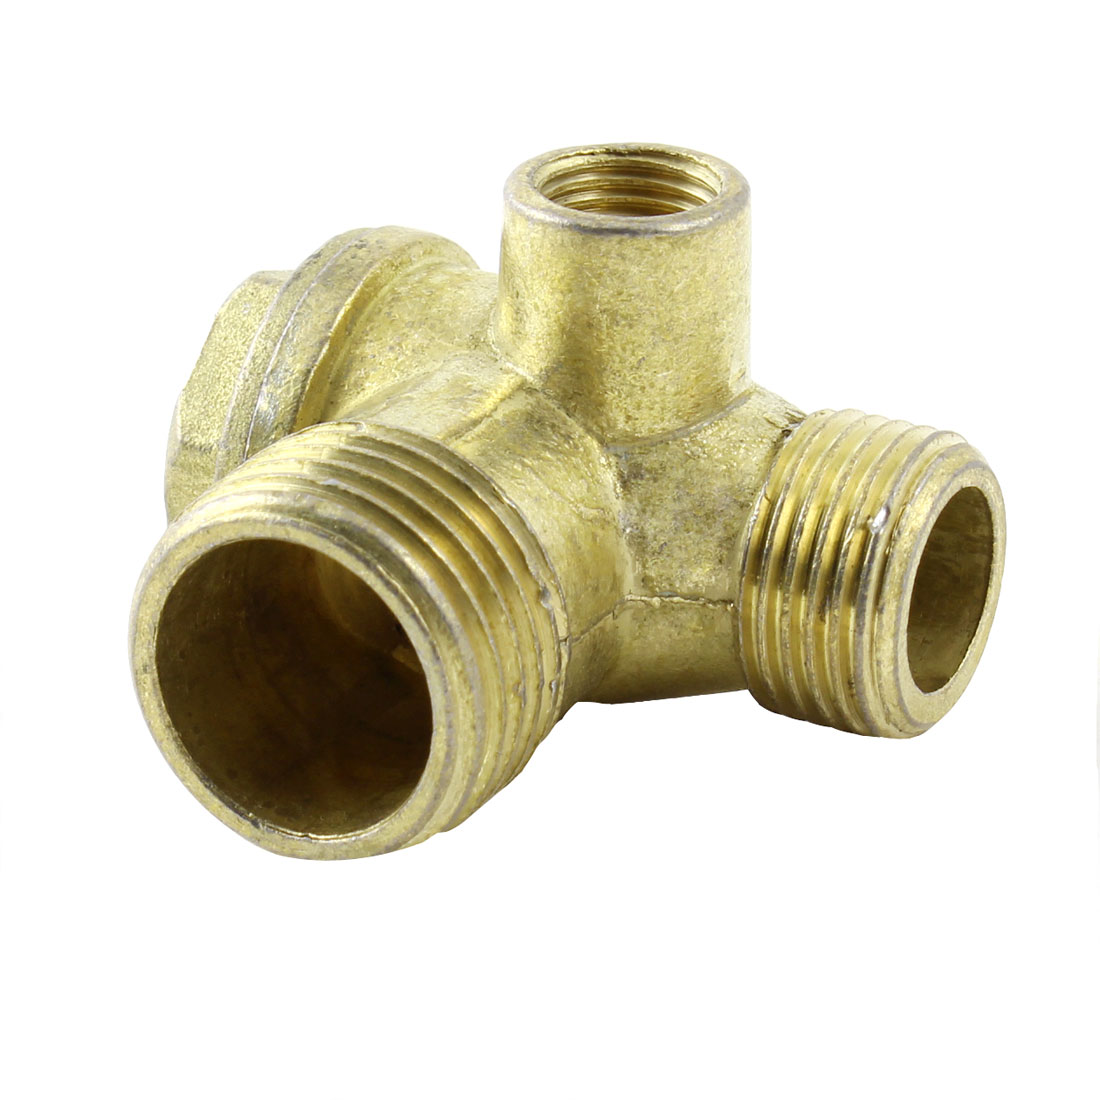 9mm Female Thread 3 Way Brass Check Valve Gold Tone for Air Compressor